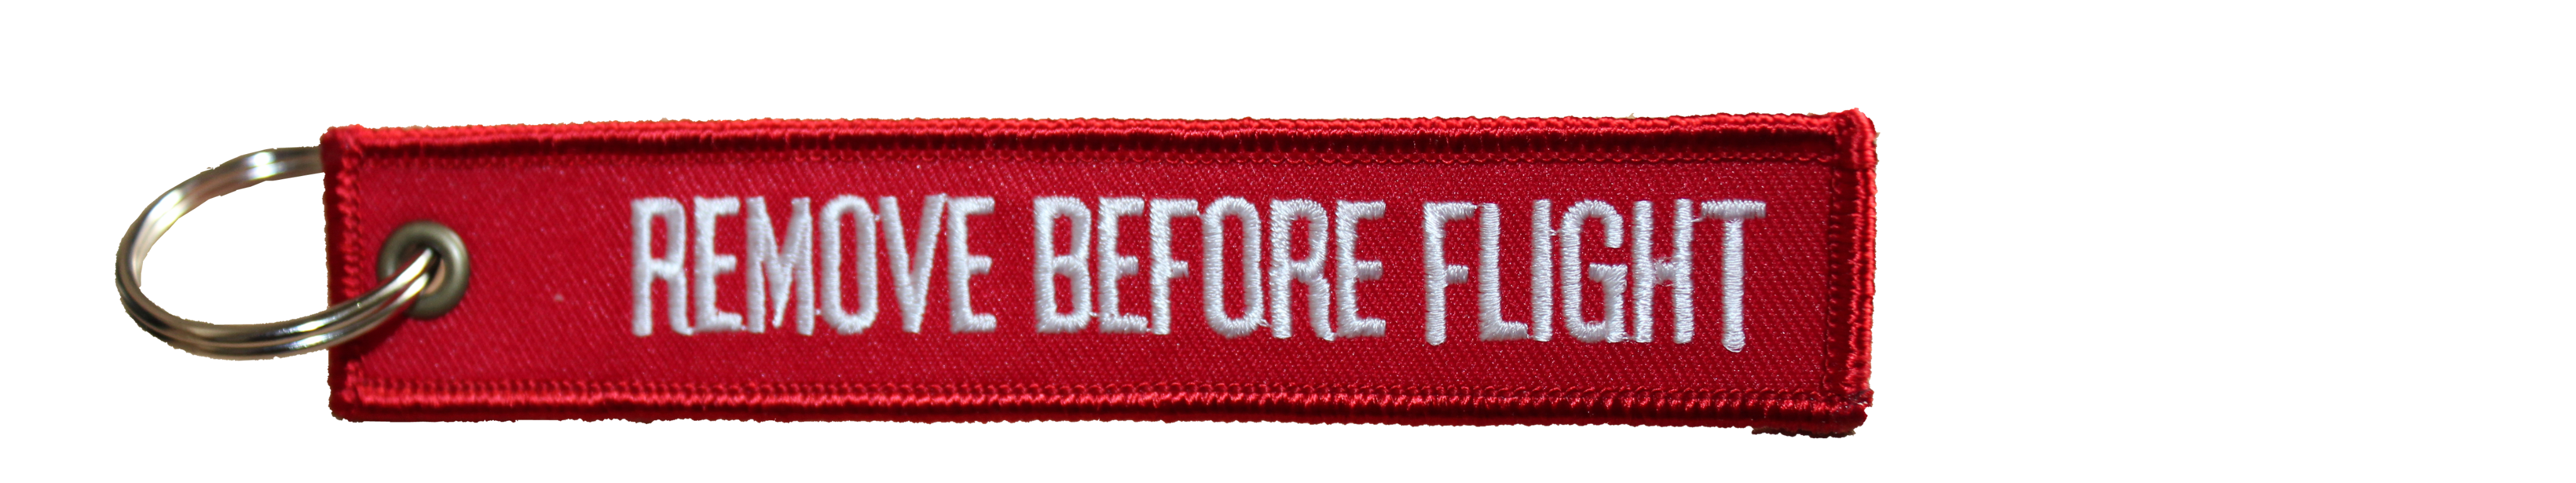 Keyring - Remove before flight